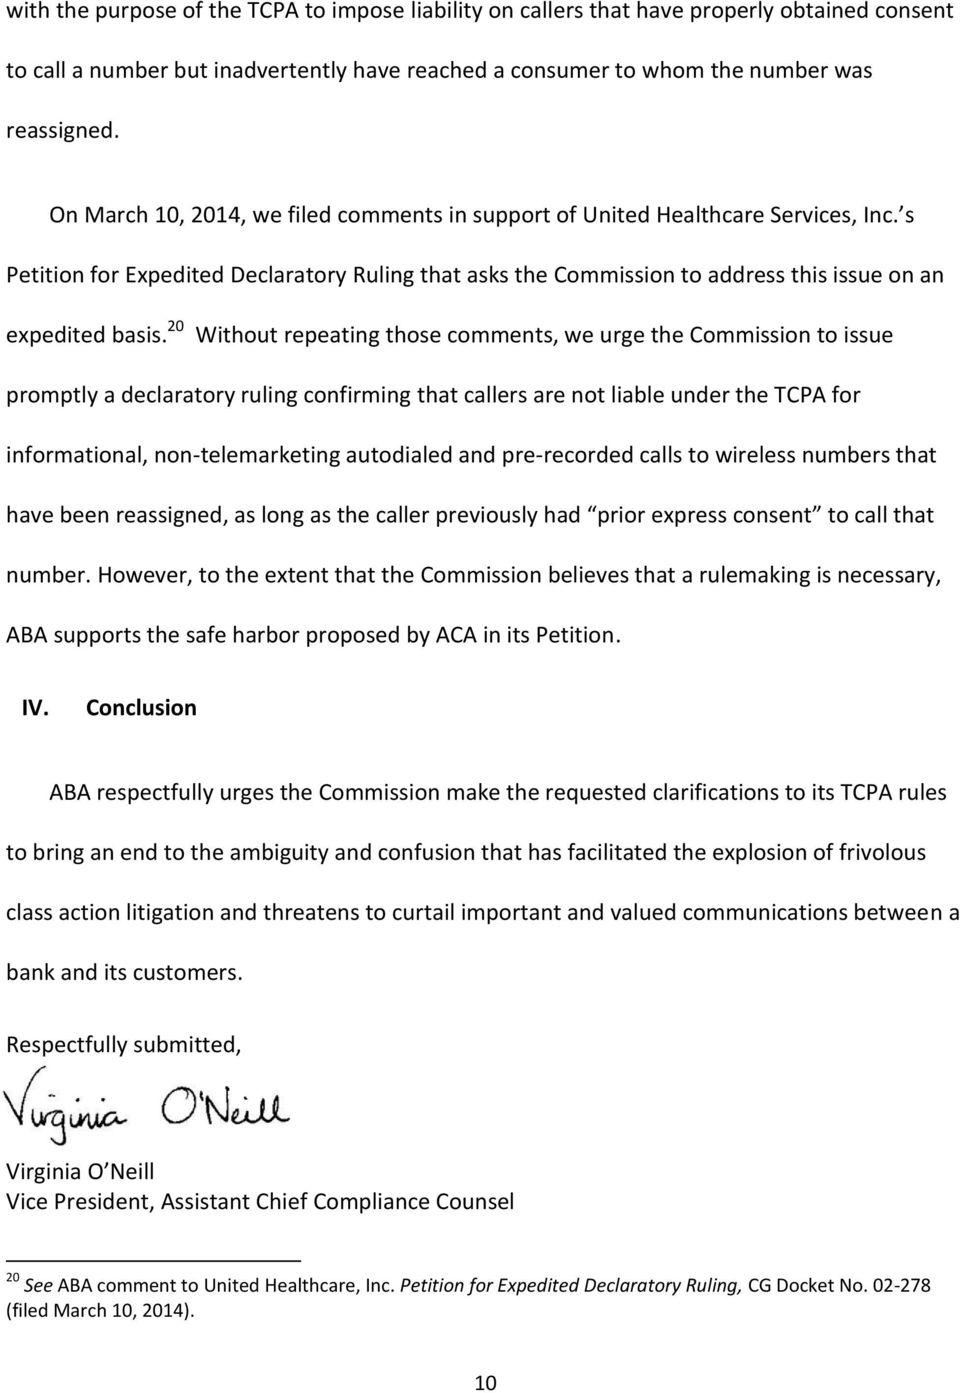 20 Without repeating those comments, we urge the Commission to issue promptly a declaratory ruling confirming that callers are not liable under the TCPA for informational, non-telemarketing